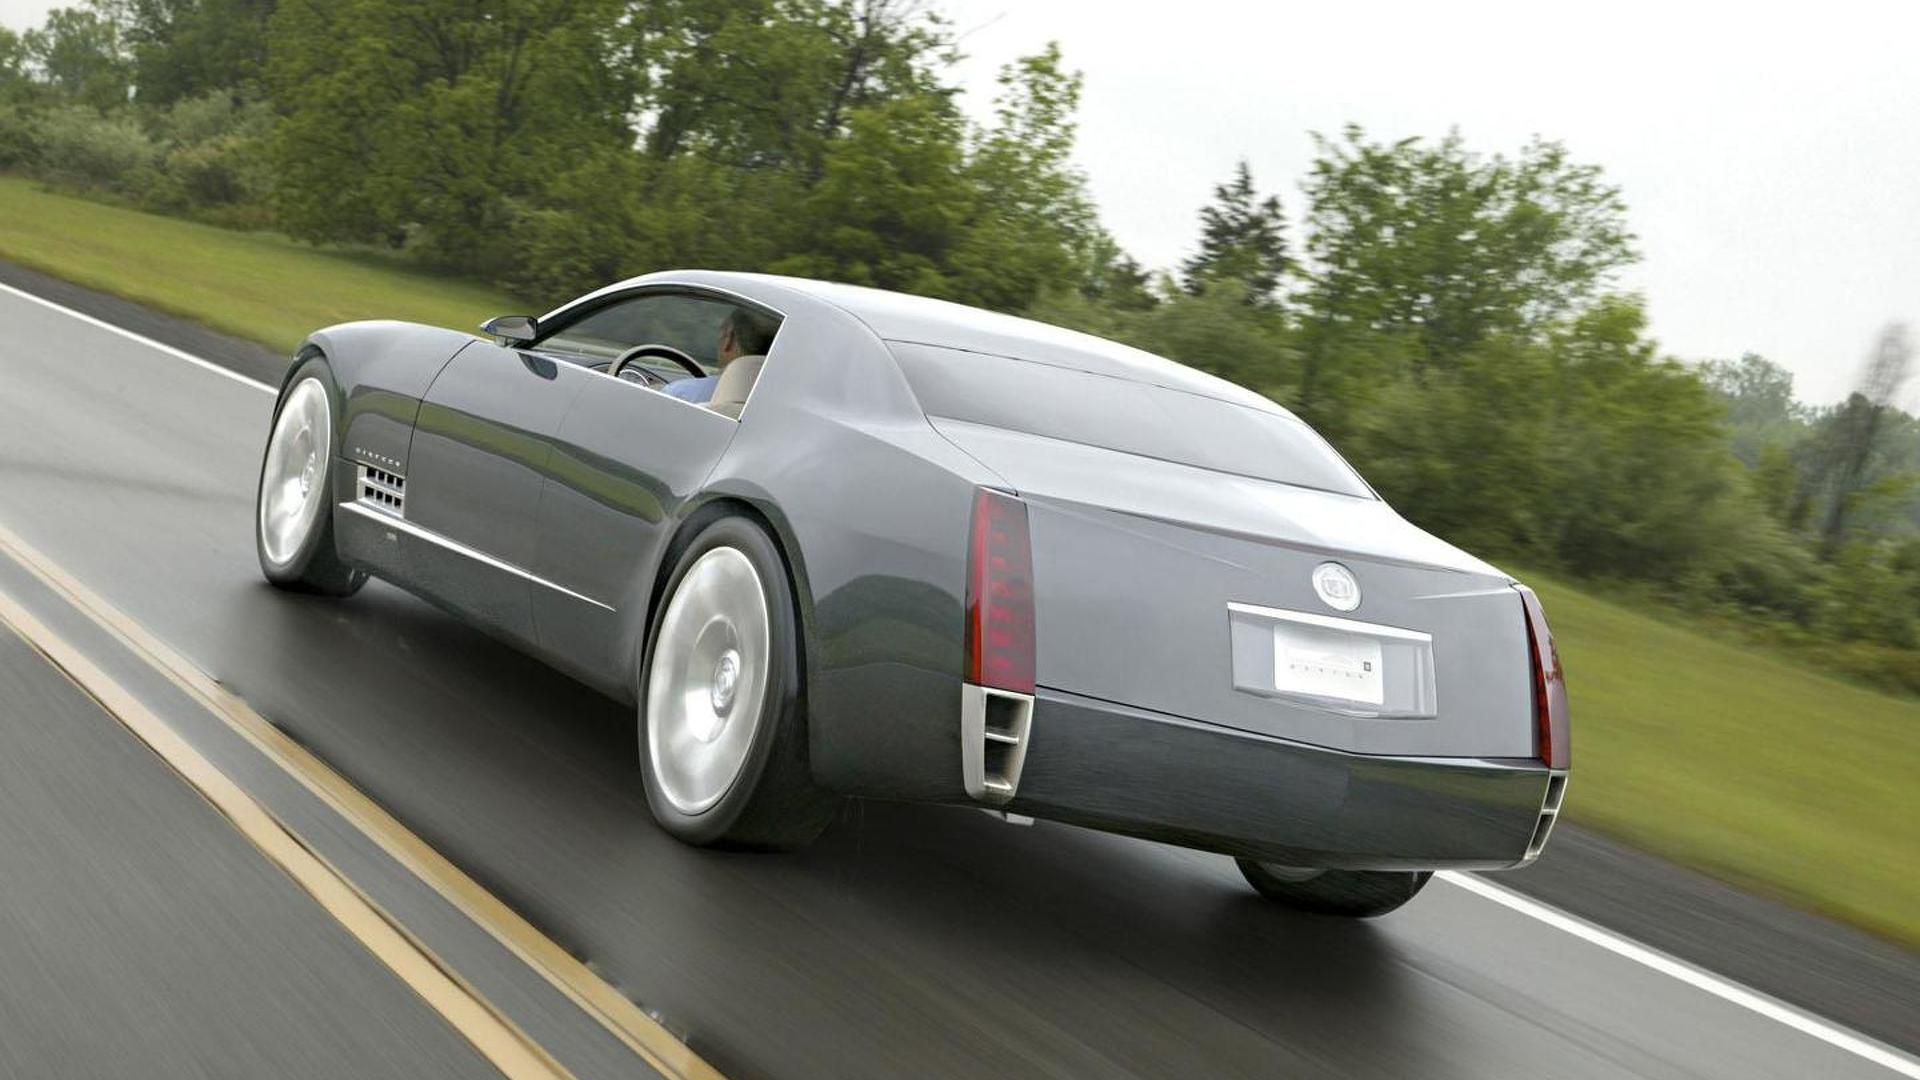 Cadillac flagship confirmed for production - report